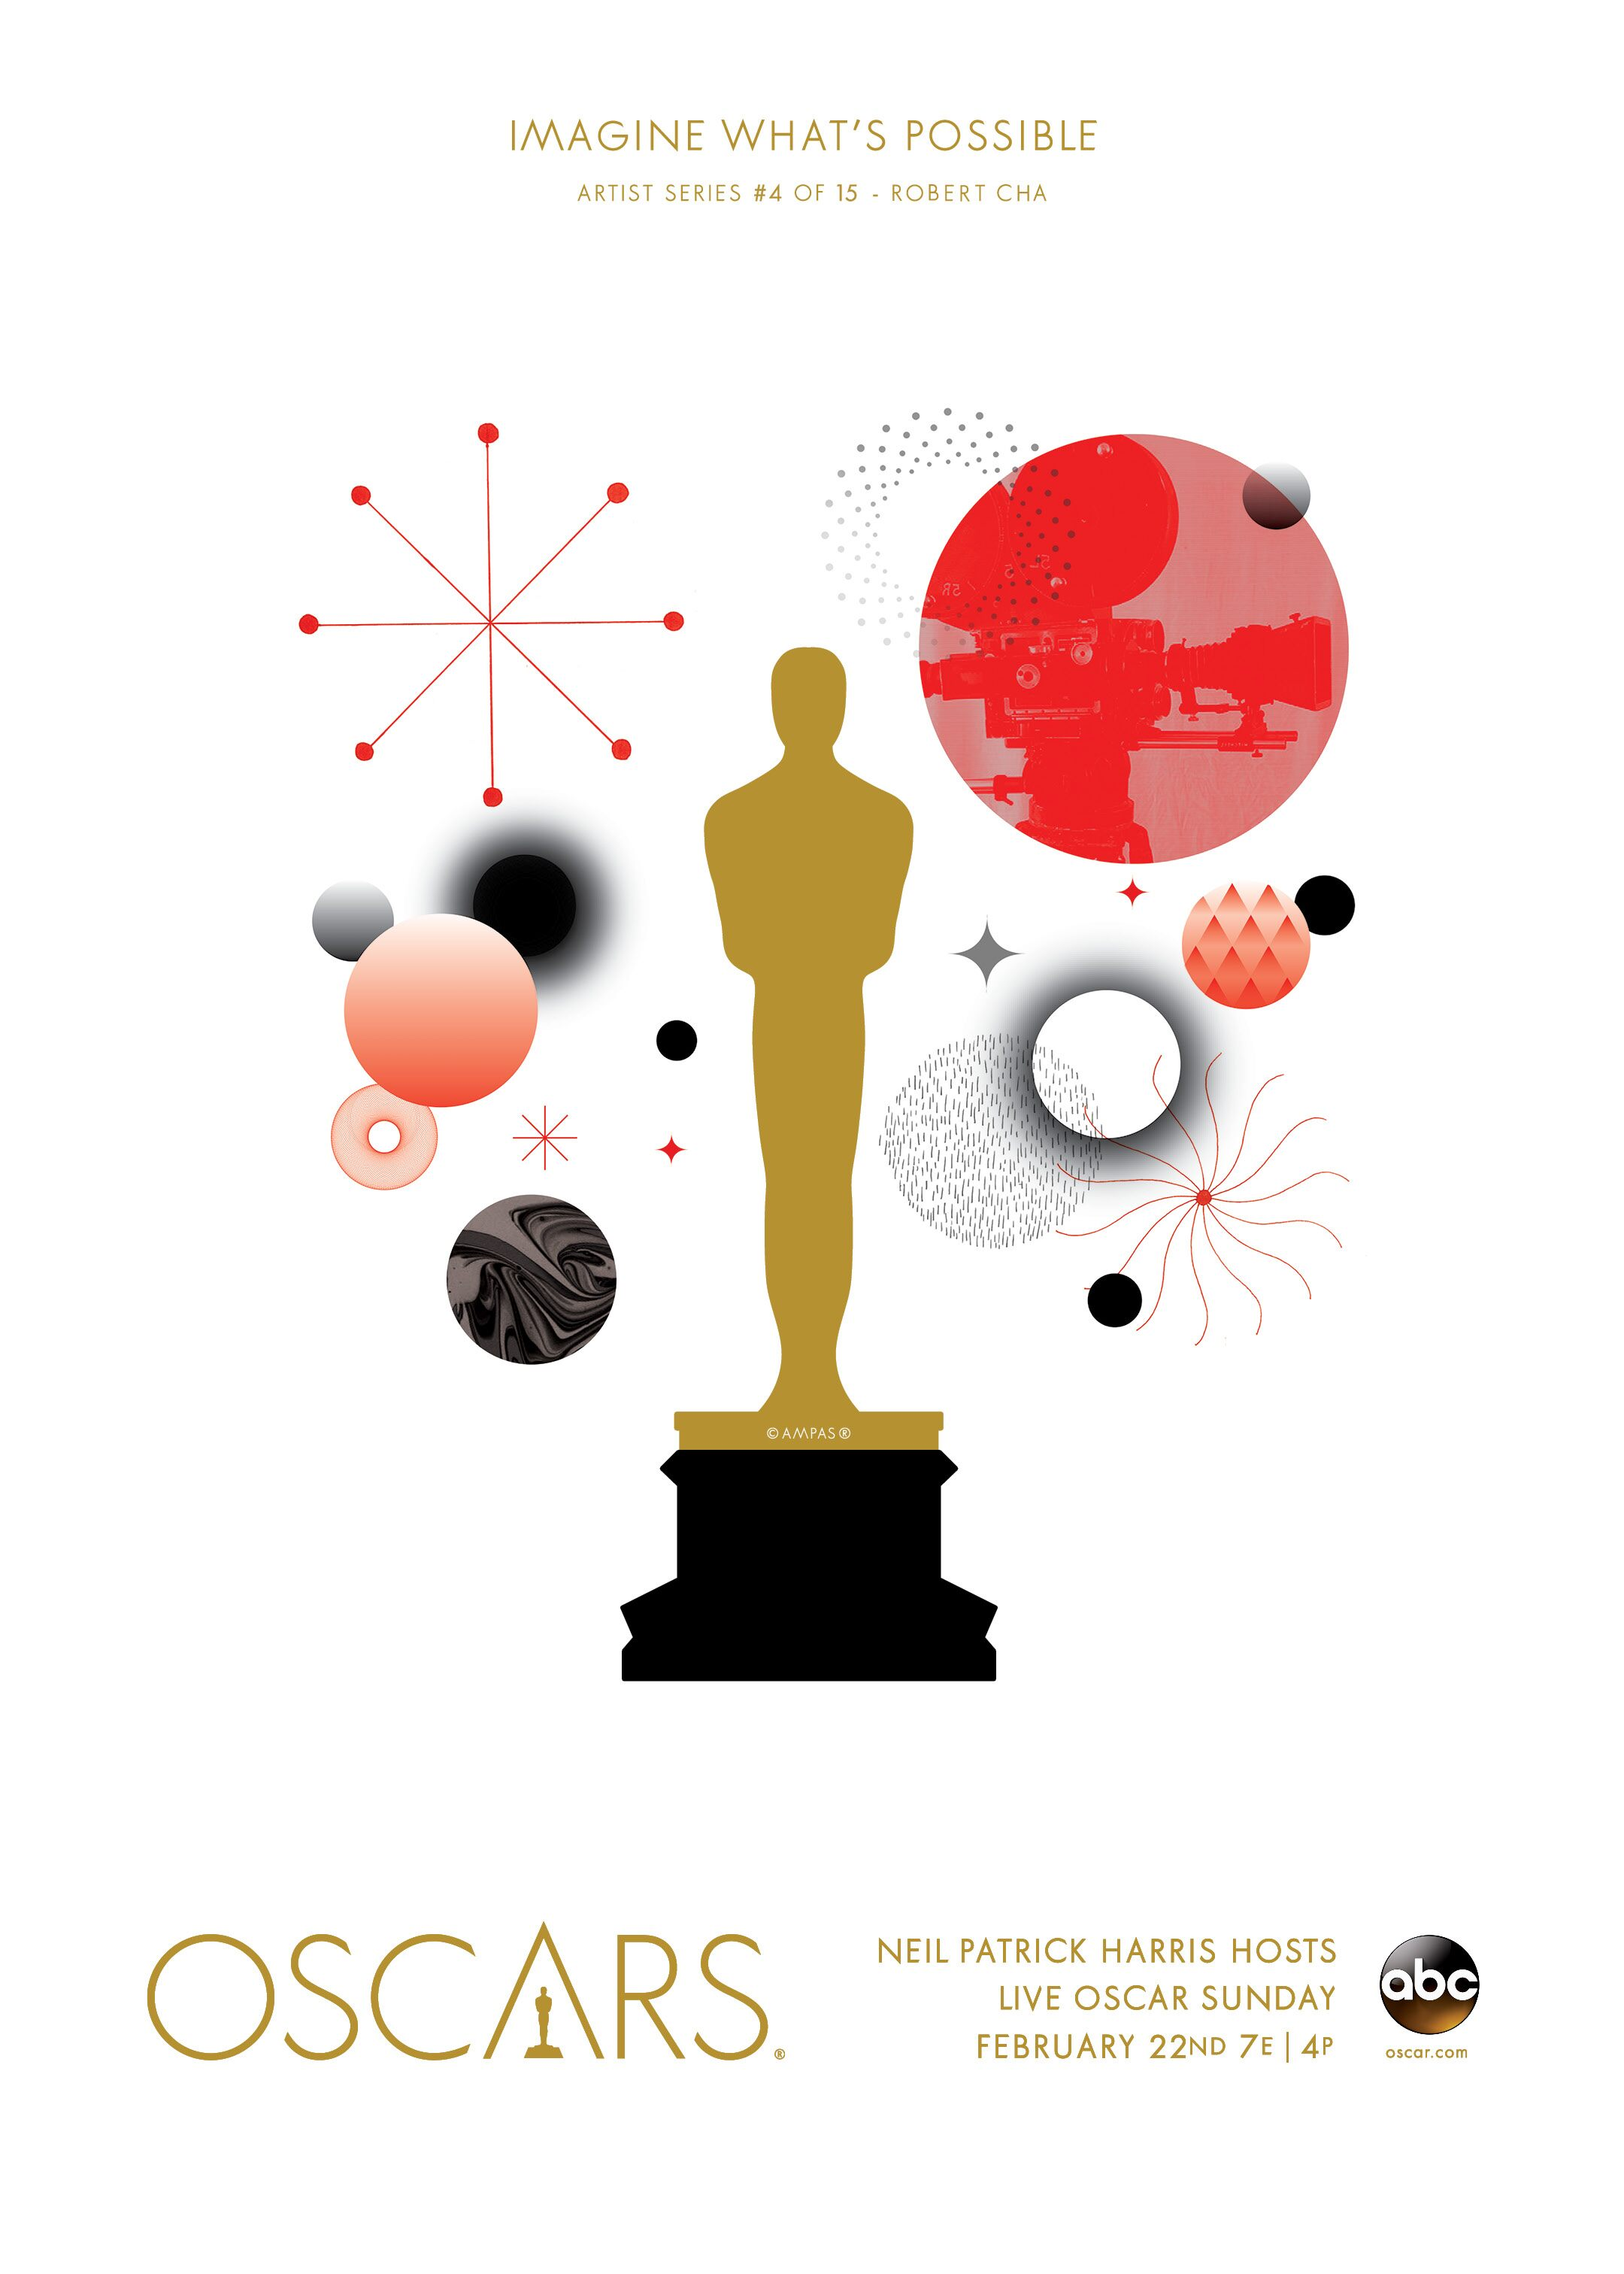 """The concept of this poster is the cinematic universe. The universe serves as a visual and literal metaphor for cinema, in that there are infinite possibilities in what we can see or imagine."" <br /><br />This design is part of <a href=""/art-gallery"">The Oscars Art Gallery</a>, a collection of art pieces inspired by this year's show and the phrase, ""Imagine What's Possible."" The most shared designs will be featured on the Oscars red carpet."